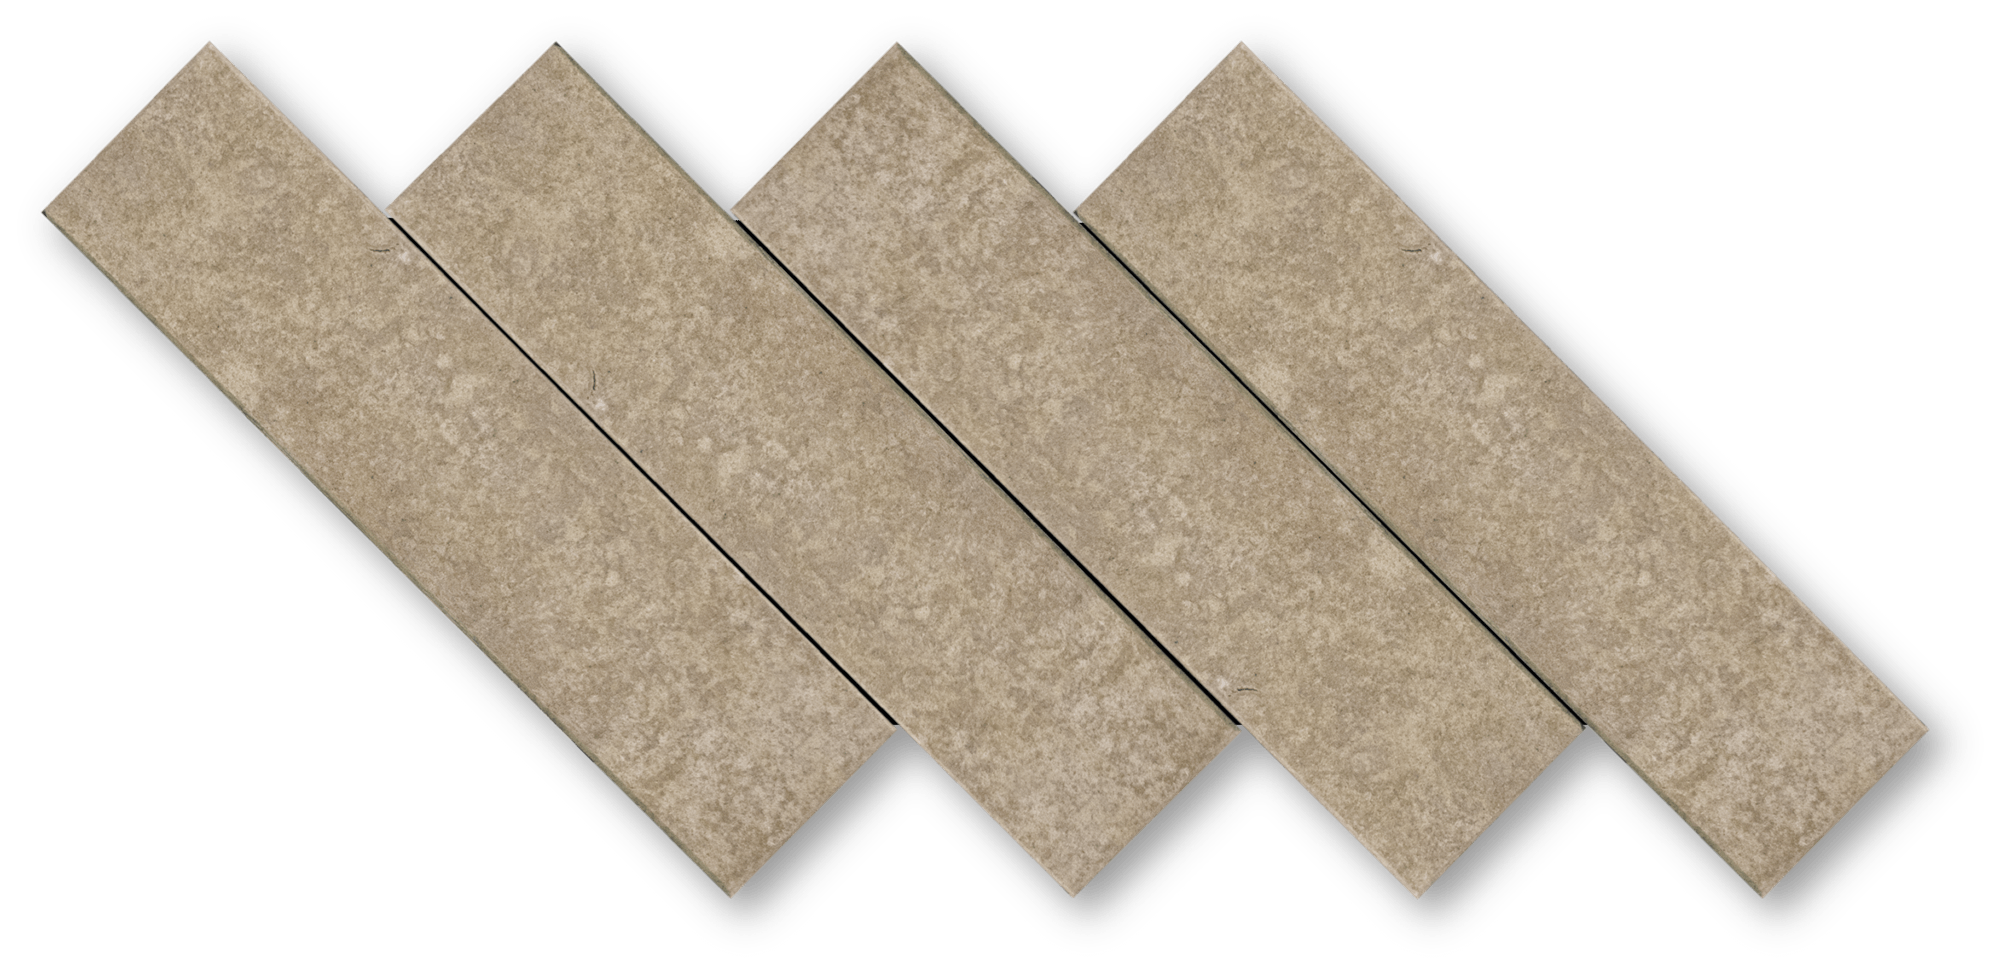 scale rectangle boards